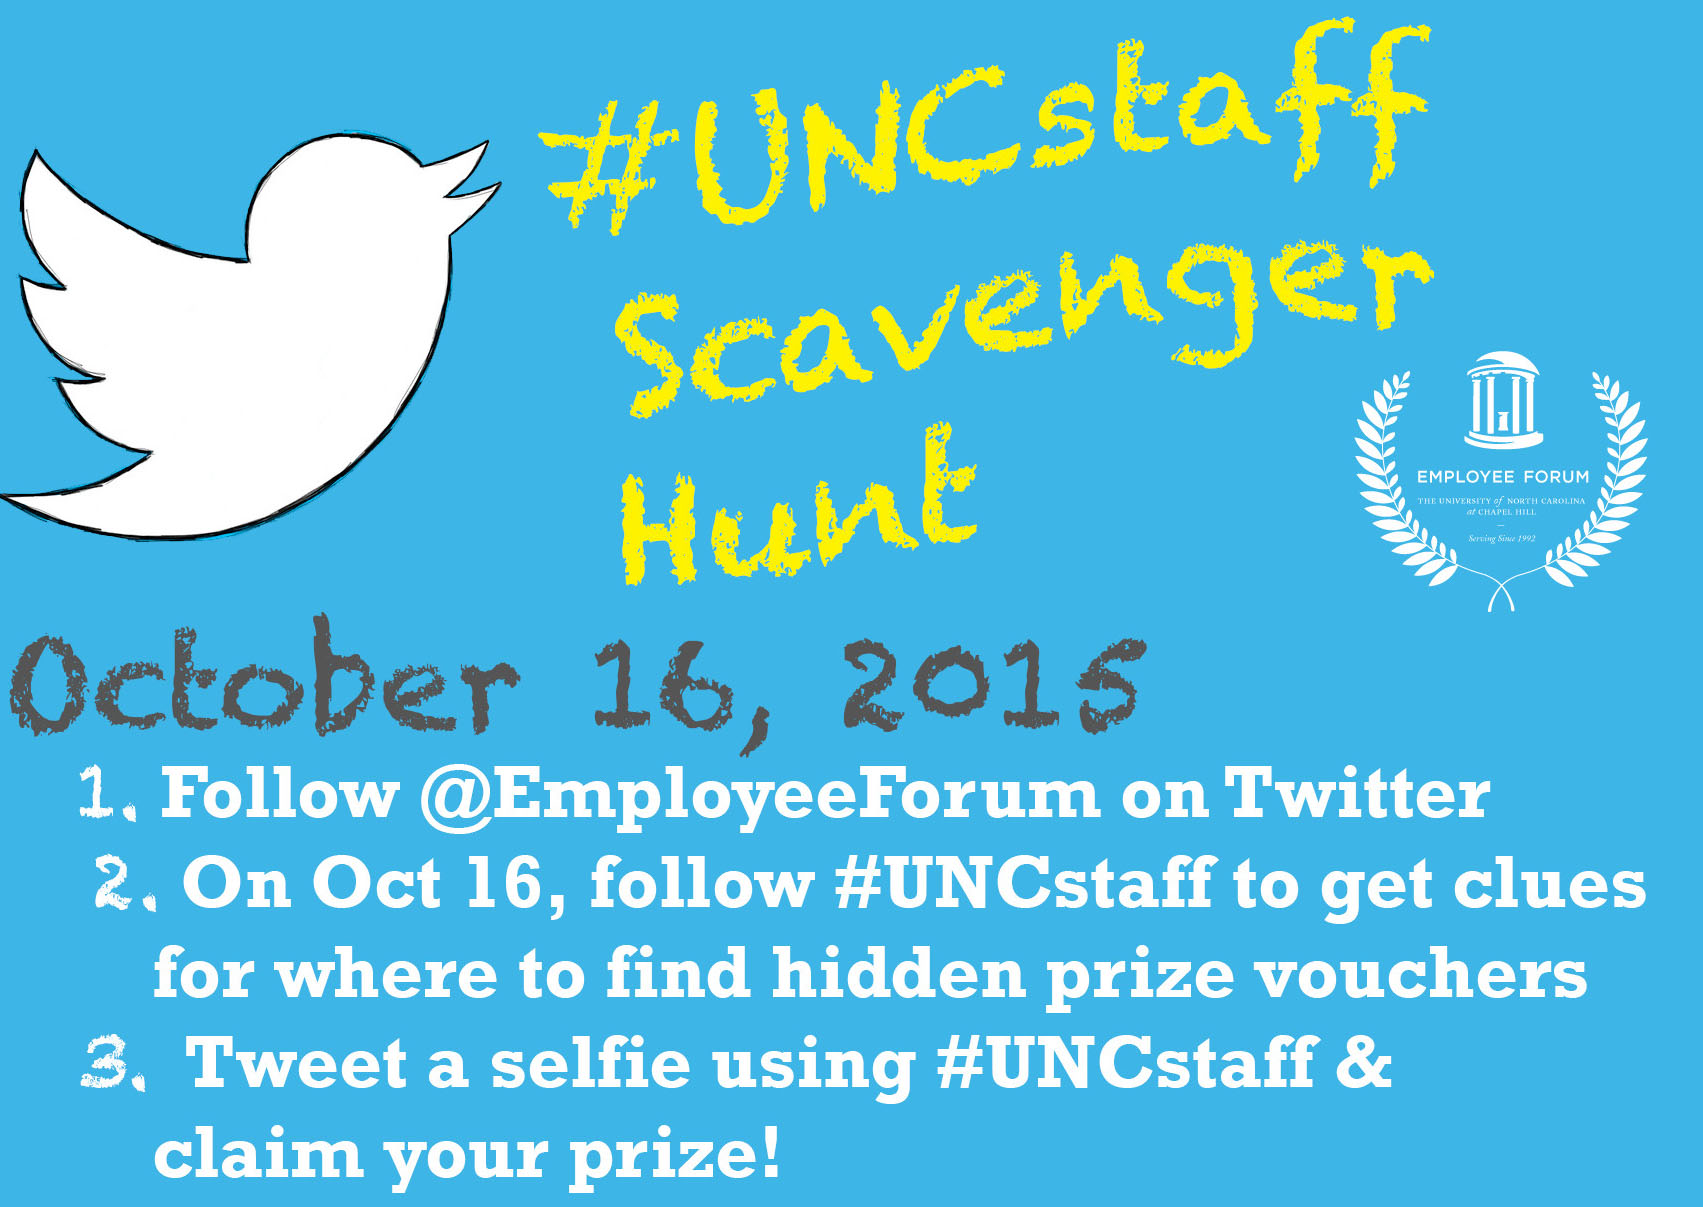 The annual #UNCstaff social media scavenger hunt is back!